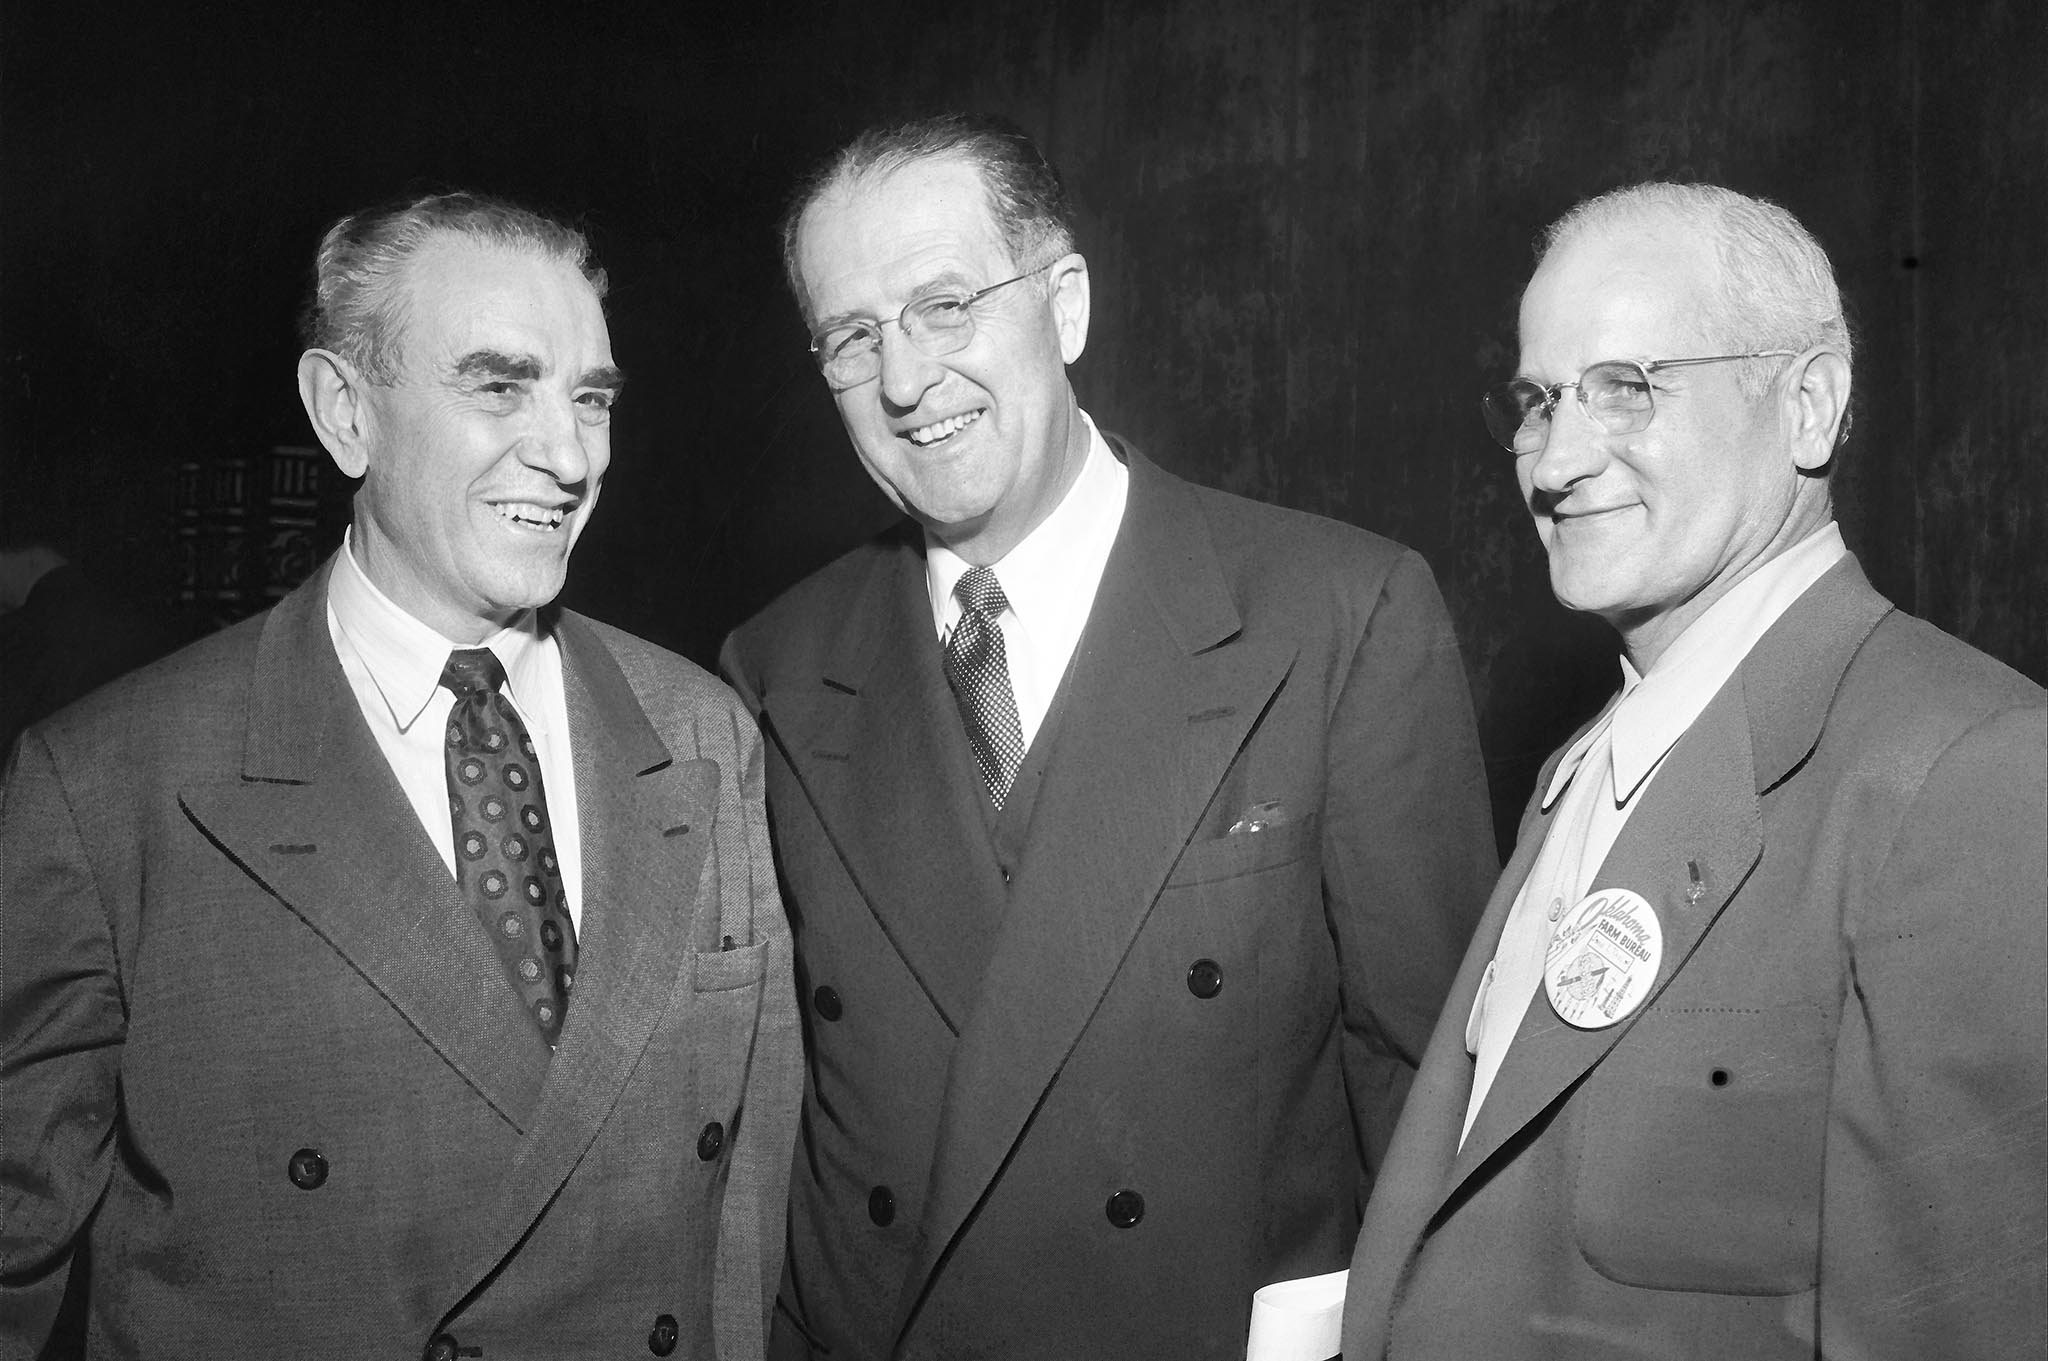 OKFB President John I. Taylor at the 1952 AFBF Convention in Seattle with Allan Kline and Clinton Anderson.